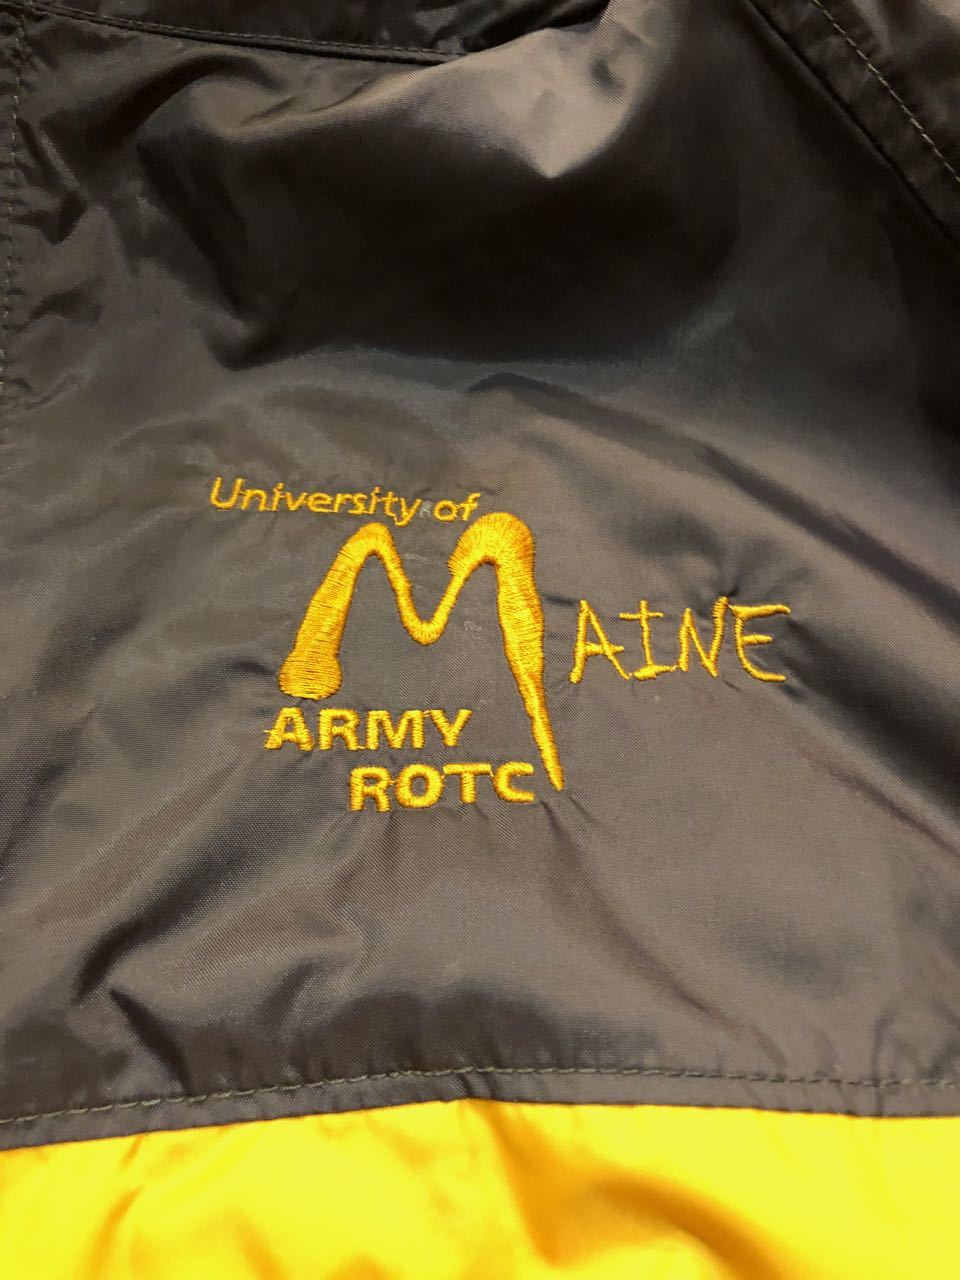 Columbia University of MAINE ARMY ROTC JACKET_c0144020_14425592.jpg